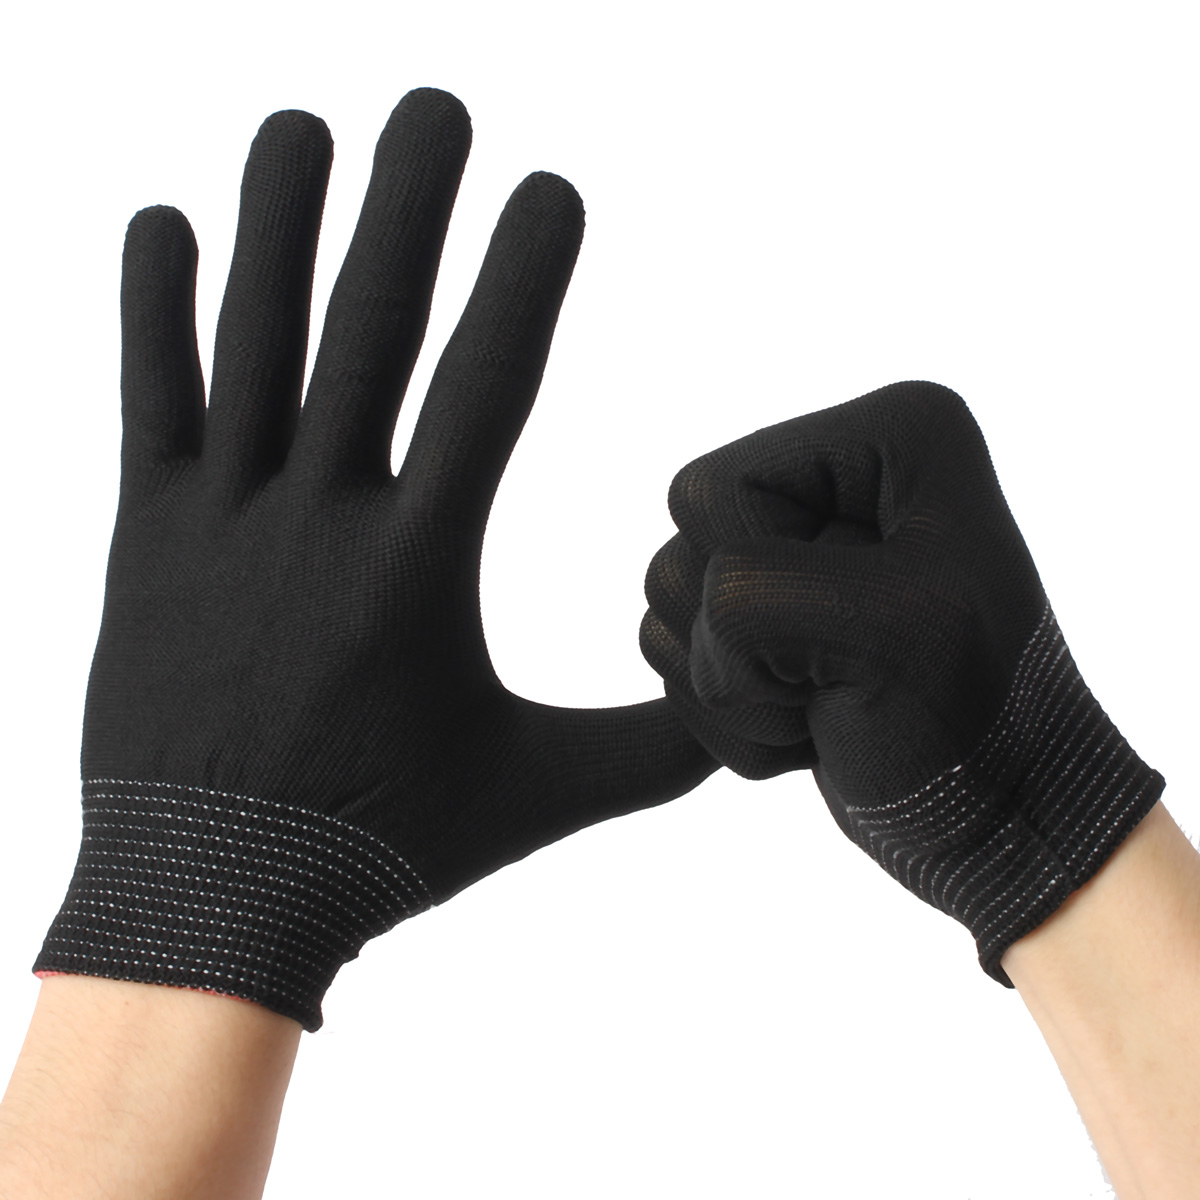 2-Pairs Work-Gloves Safety-Supplies Antistatic Trabajo Guantes